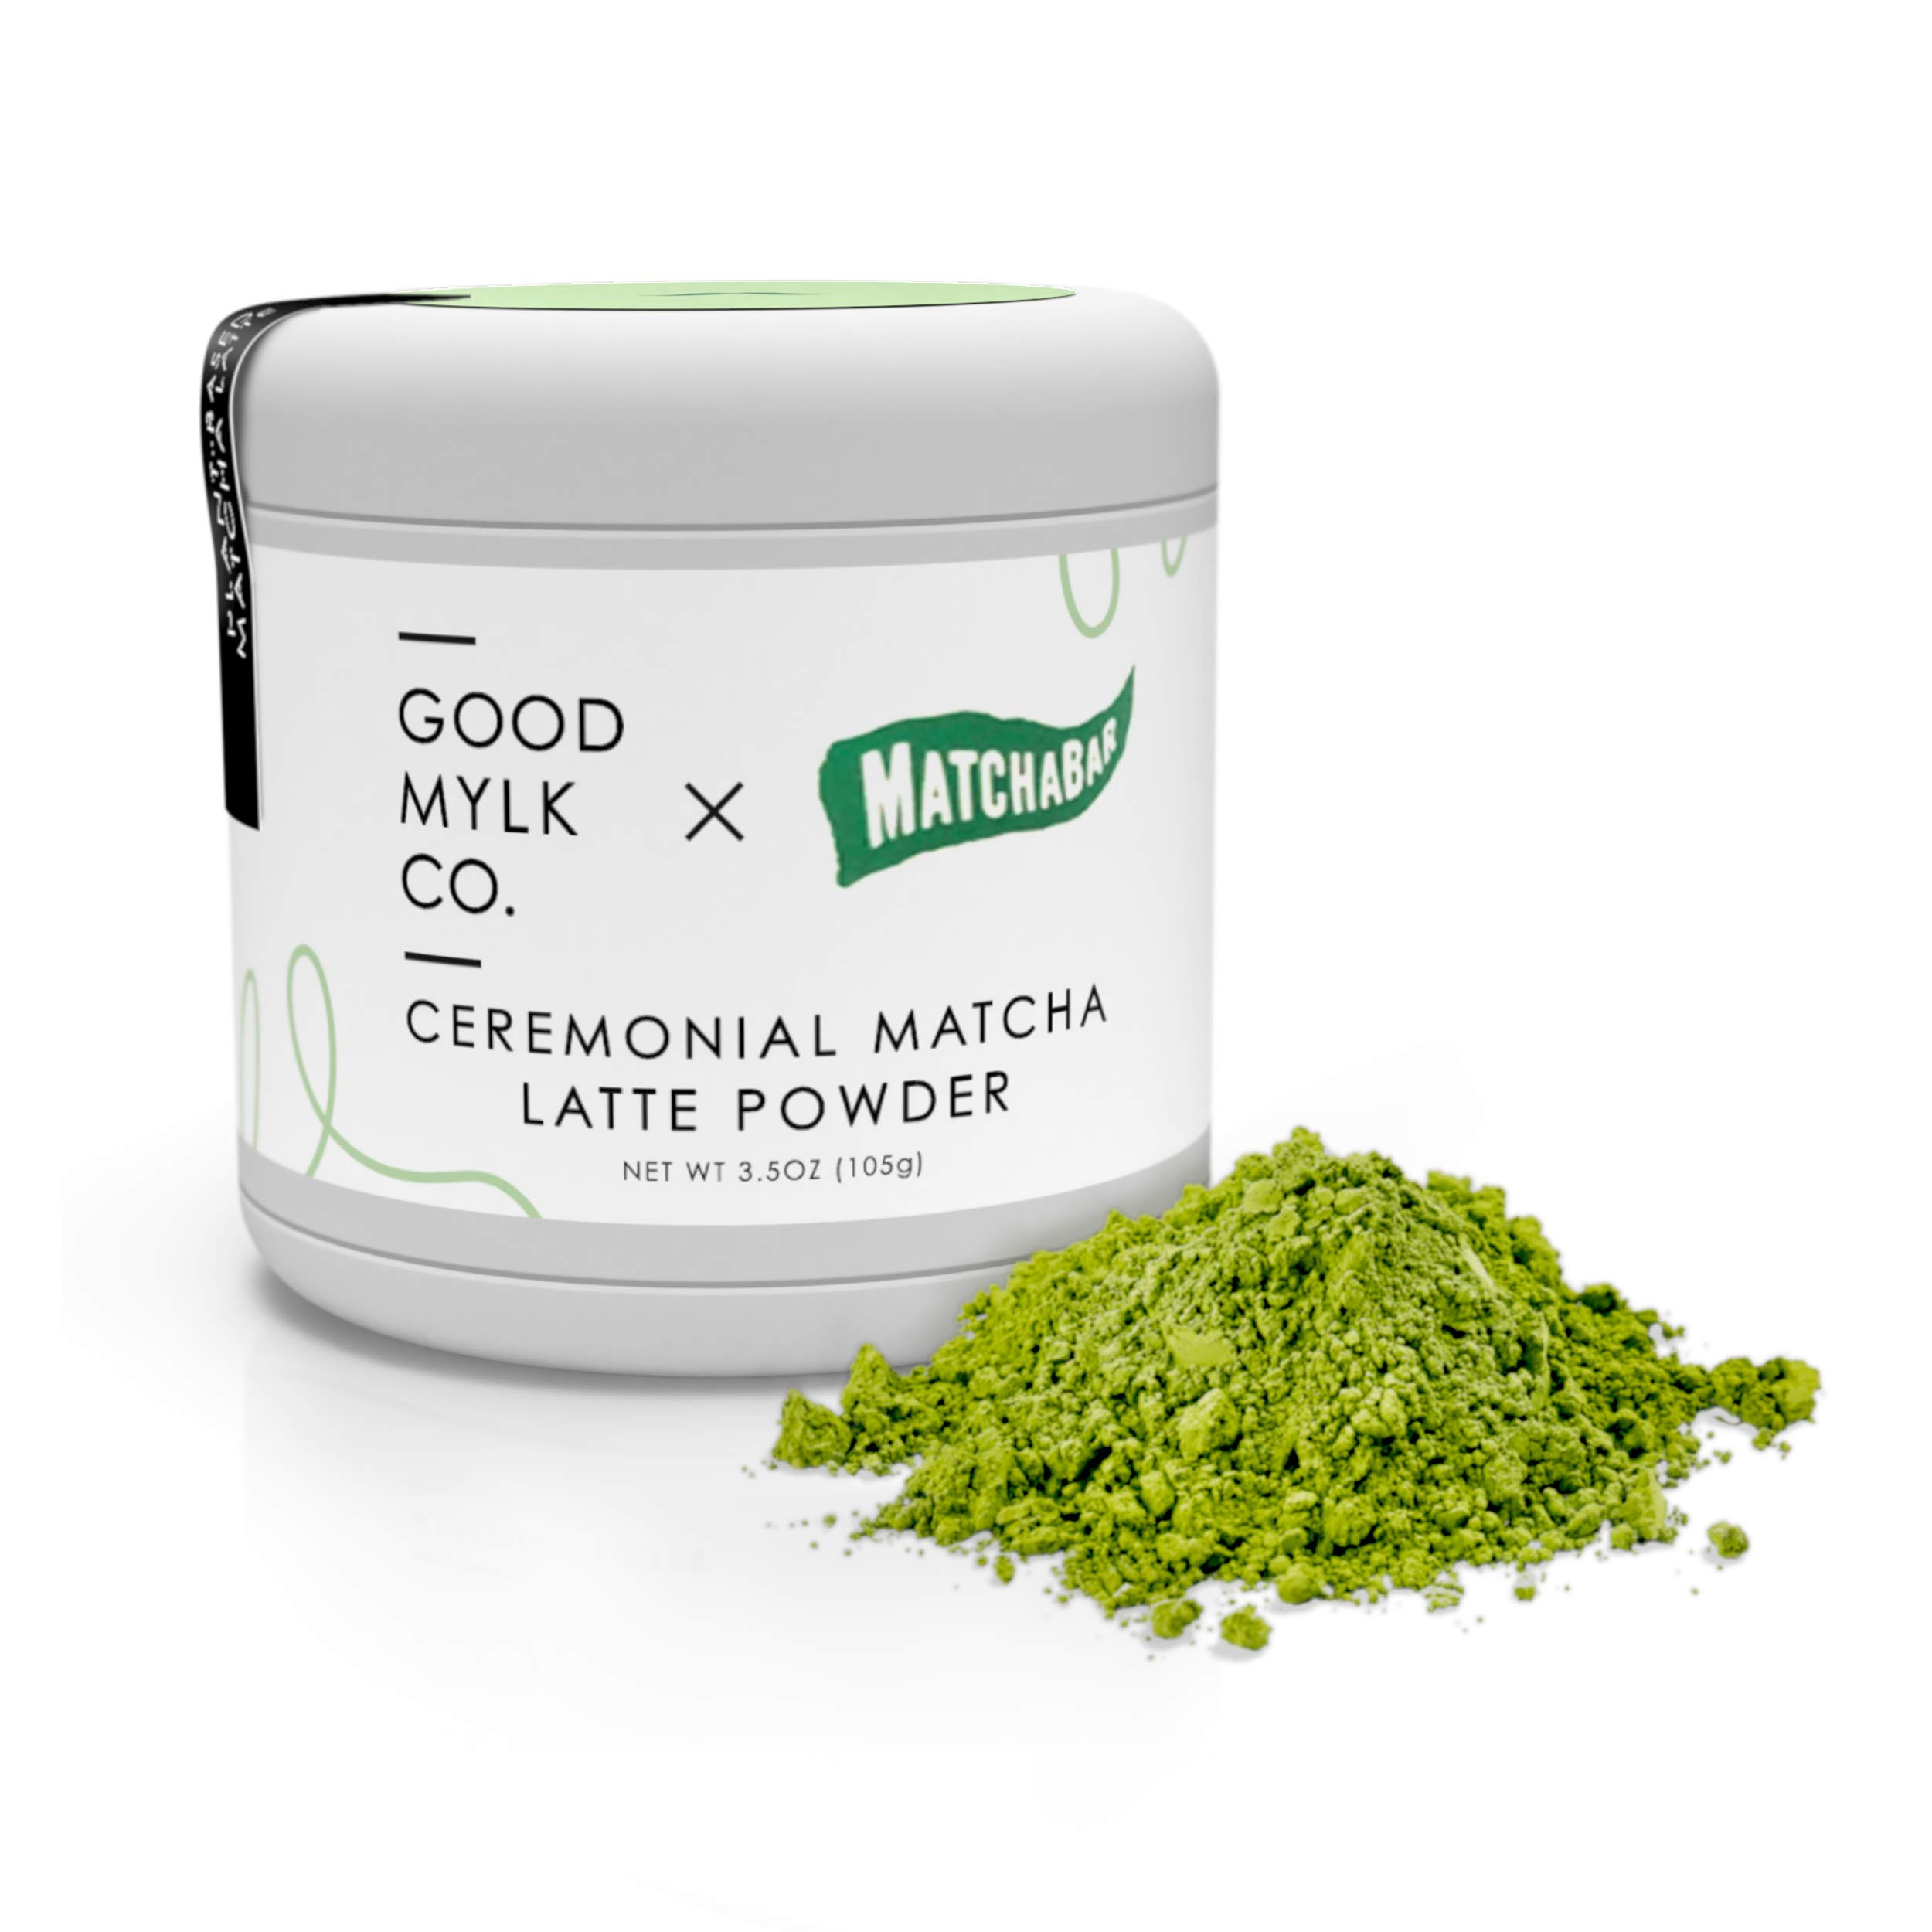 Ceremonial Matcha Latte Powder by Goodmylk Co. x MatchaBar | Ceremonial Grade Japanese Green Tea with Dairy-Free Almond Creamer | Just Add Hot Water and Whisk or Blend | Organic, Sprouted, Plant Based by Goodmylk Co.